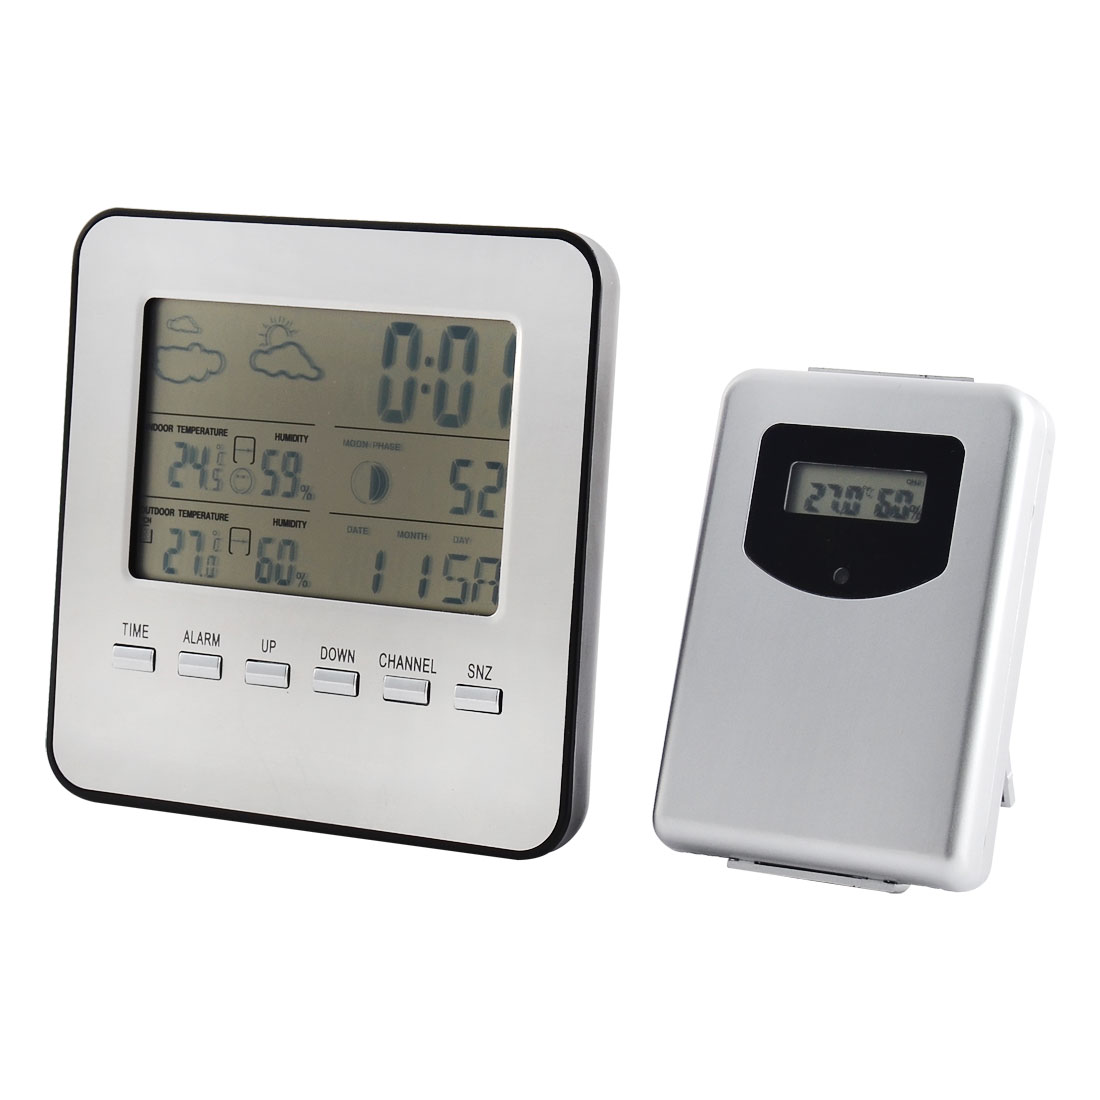 Indoor Outdoor Wireless Weather Station Alarm Clock Thermometer Hygrometer